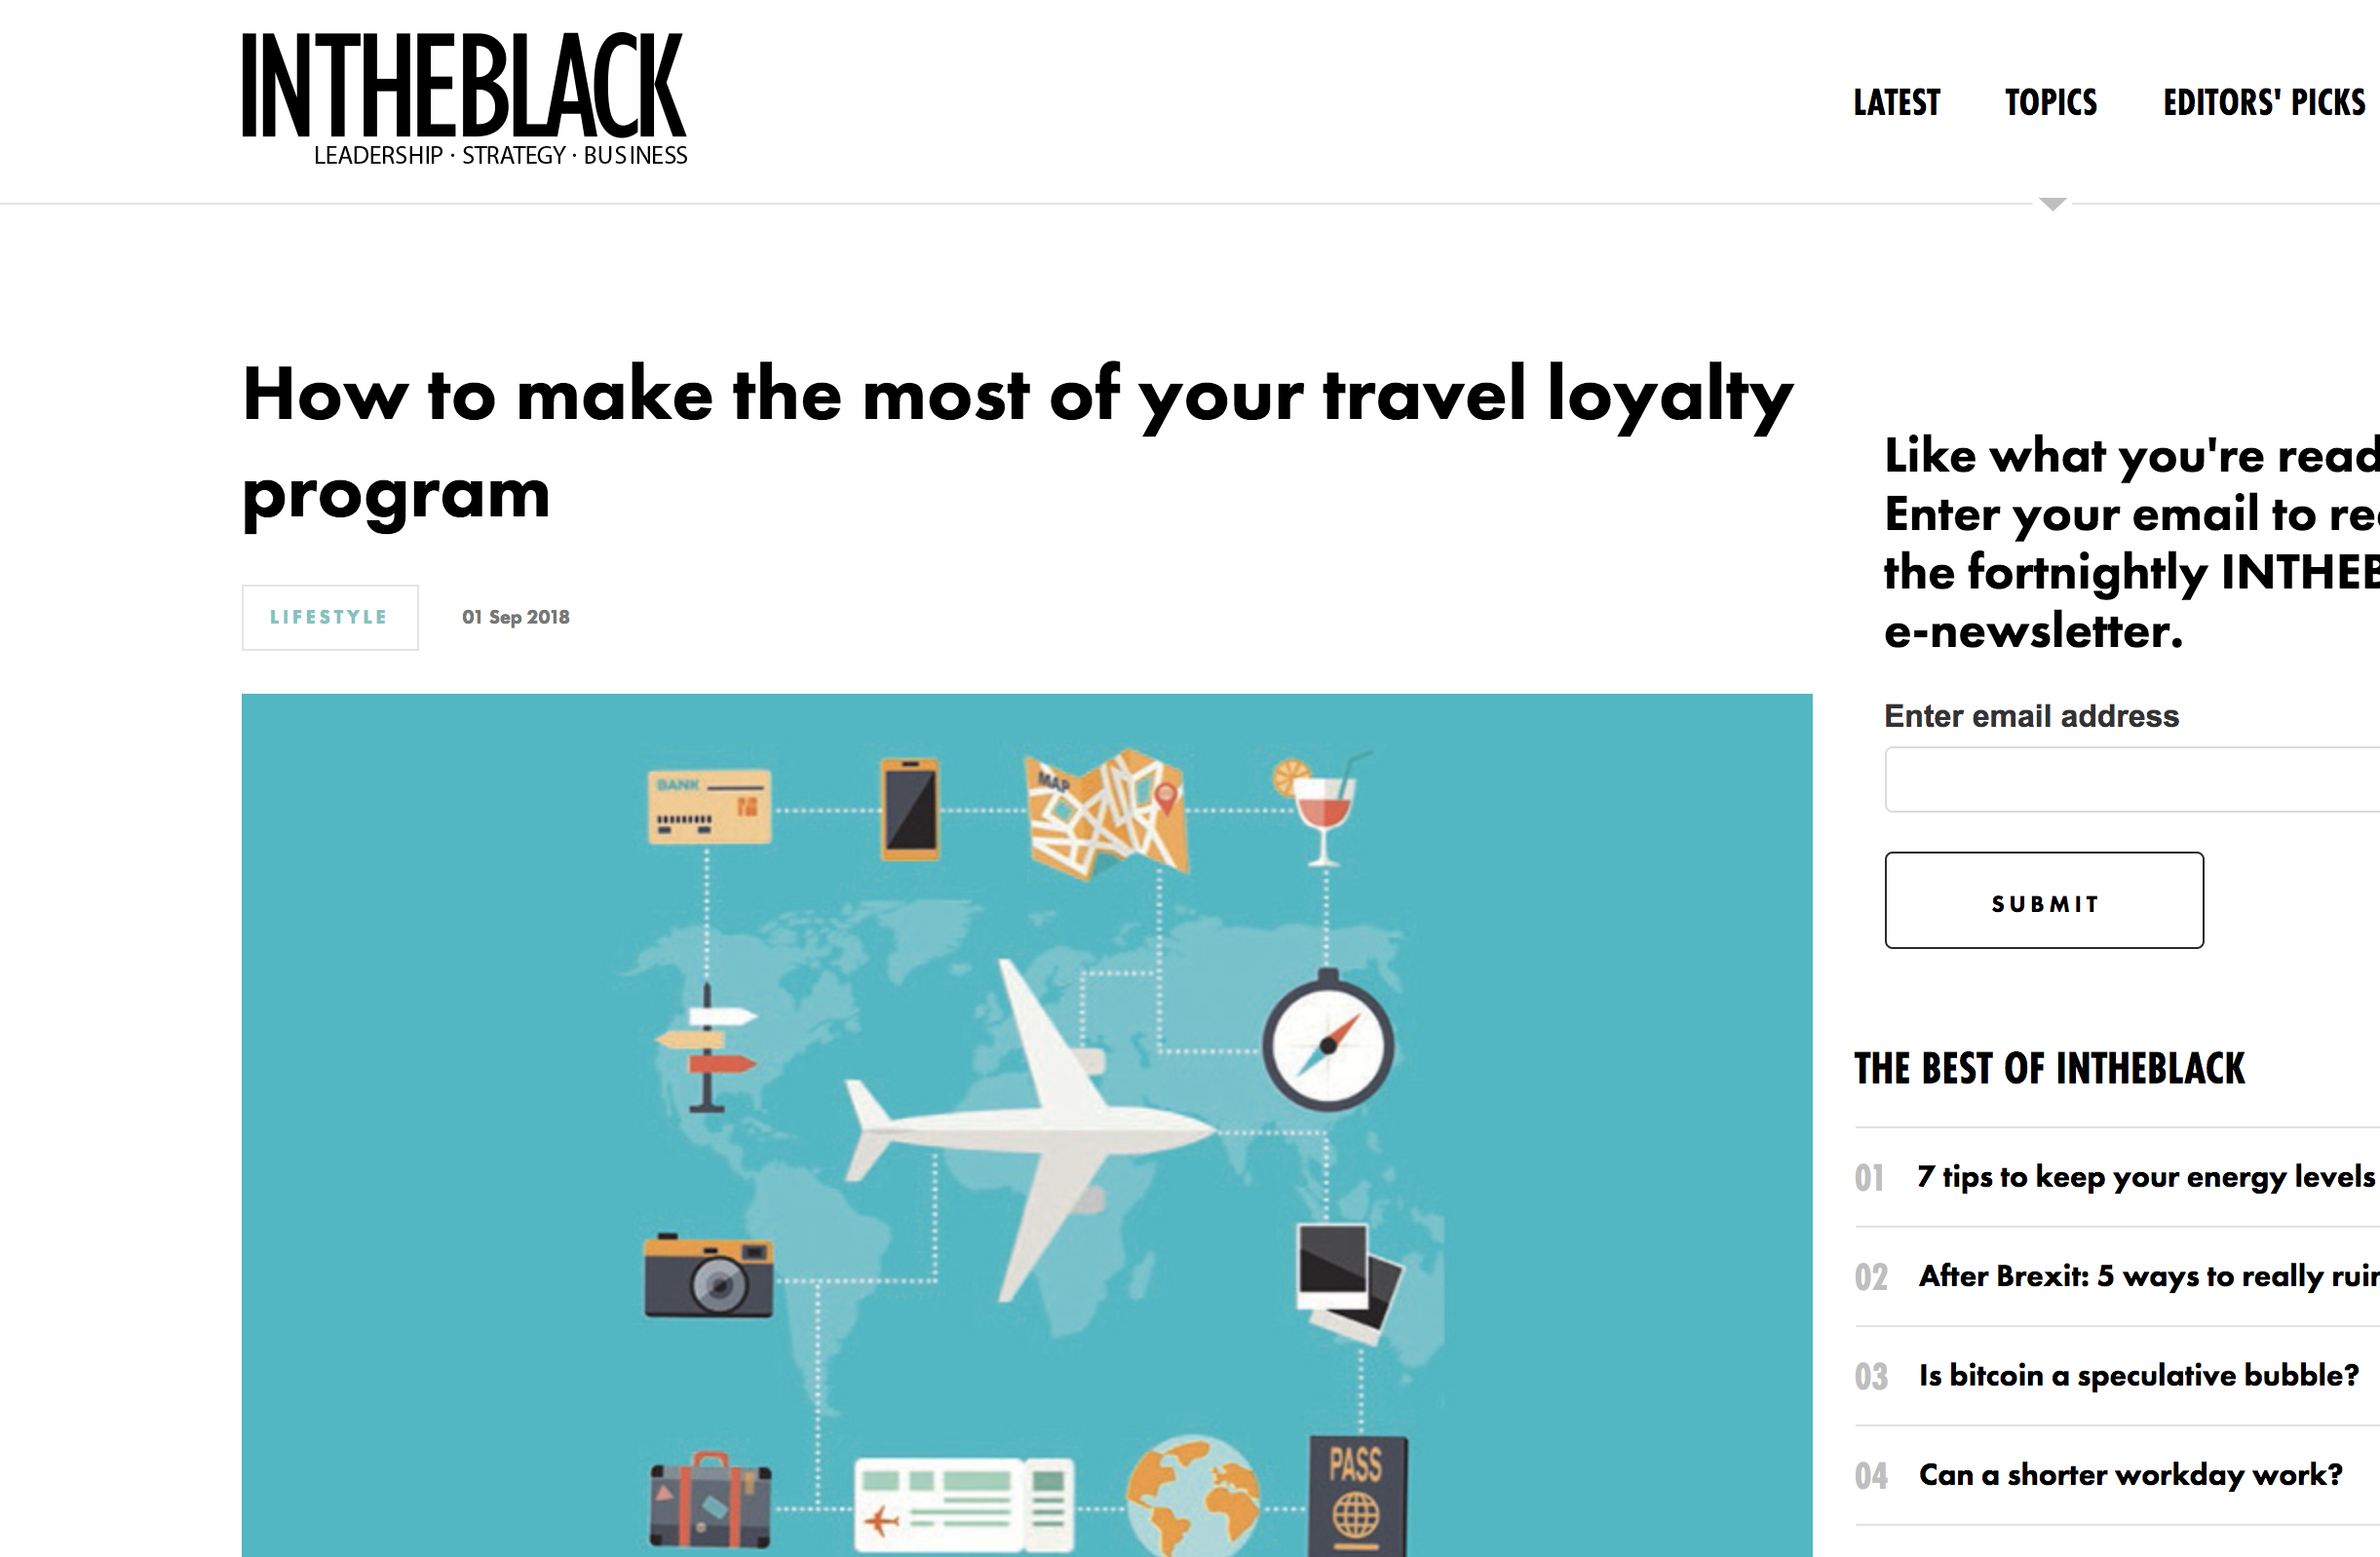 INTHEBLACK - Make the most of your travel loyalty program